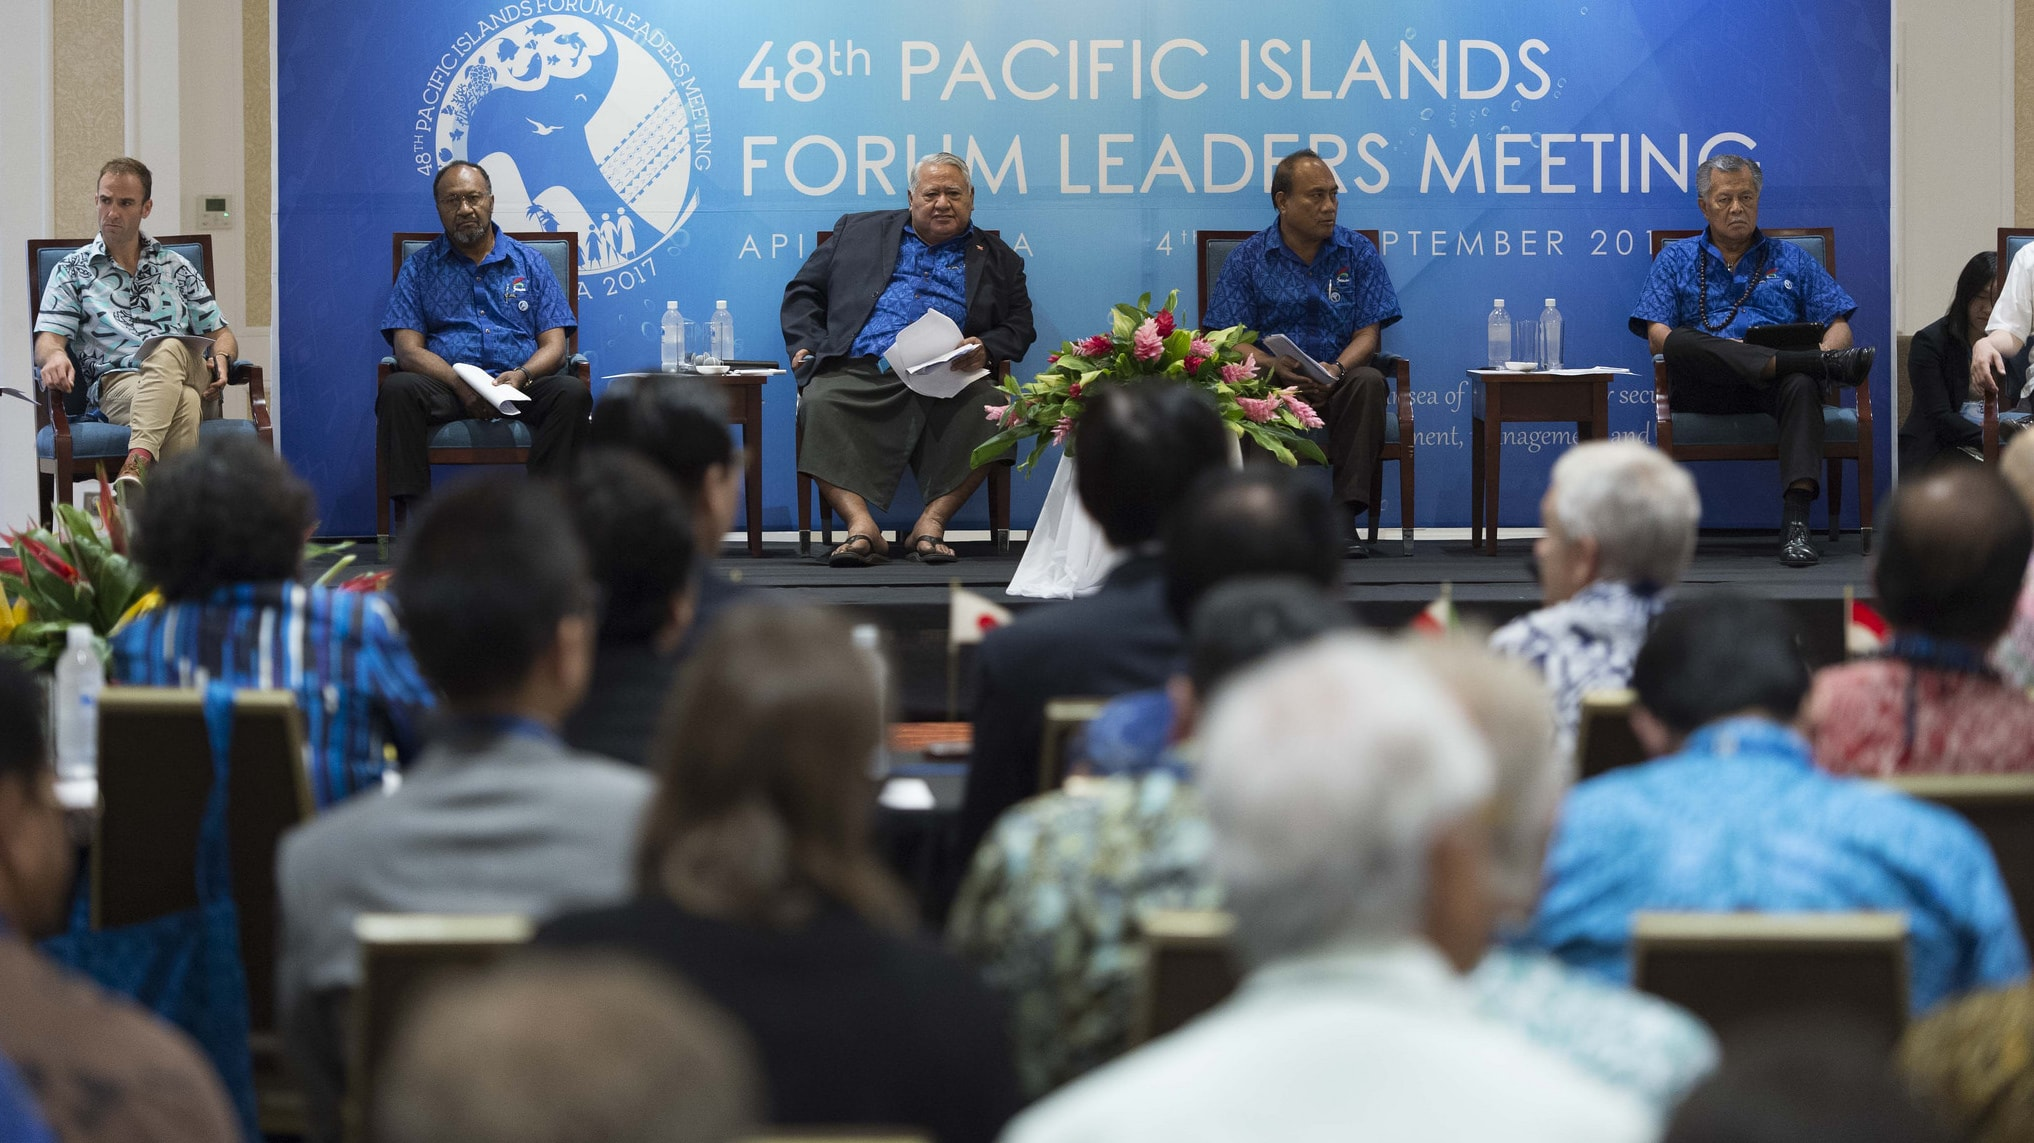 Opening the 2017 Pacific Island Forum Leaders Meeting, Apia, Samoa (Photo: US Embassy, Wellington/Flickr)